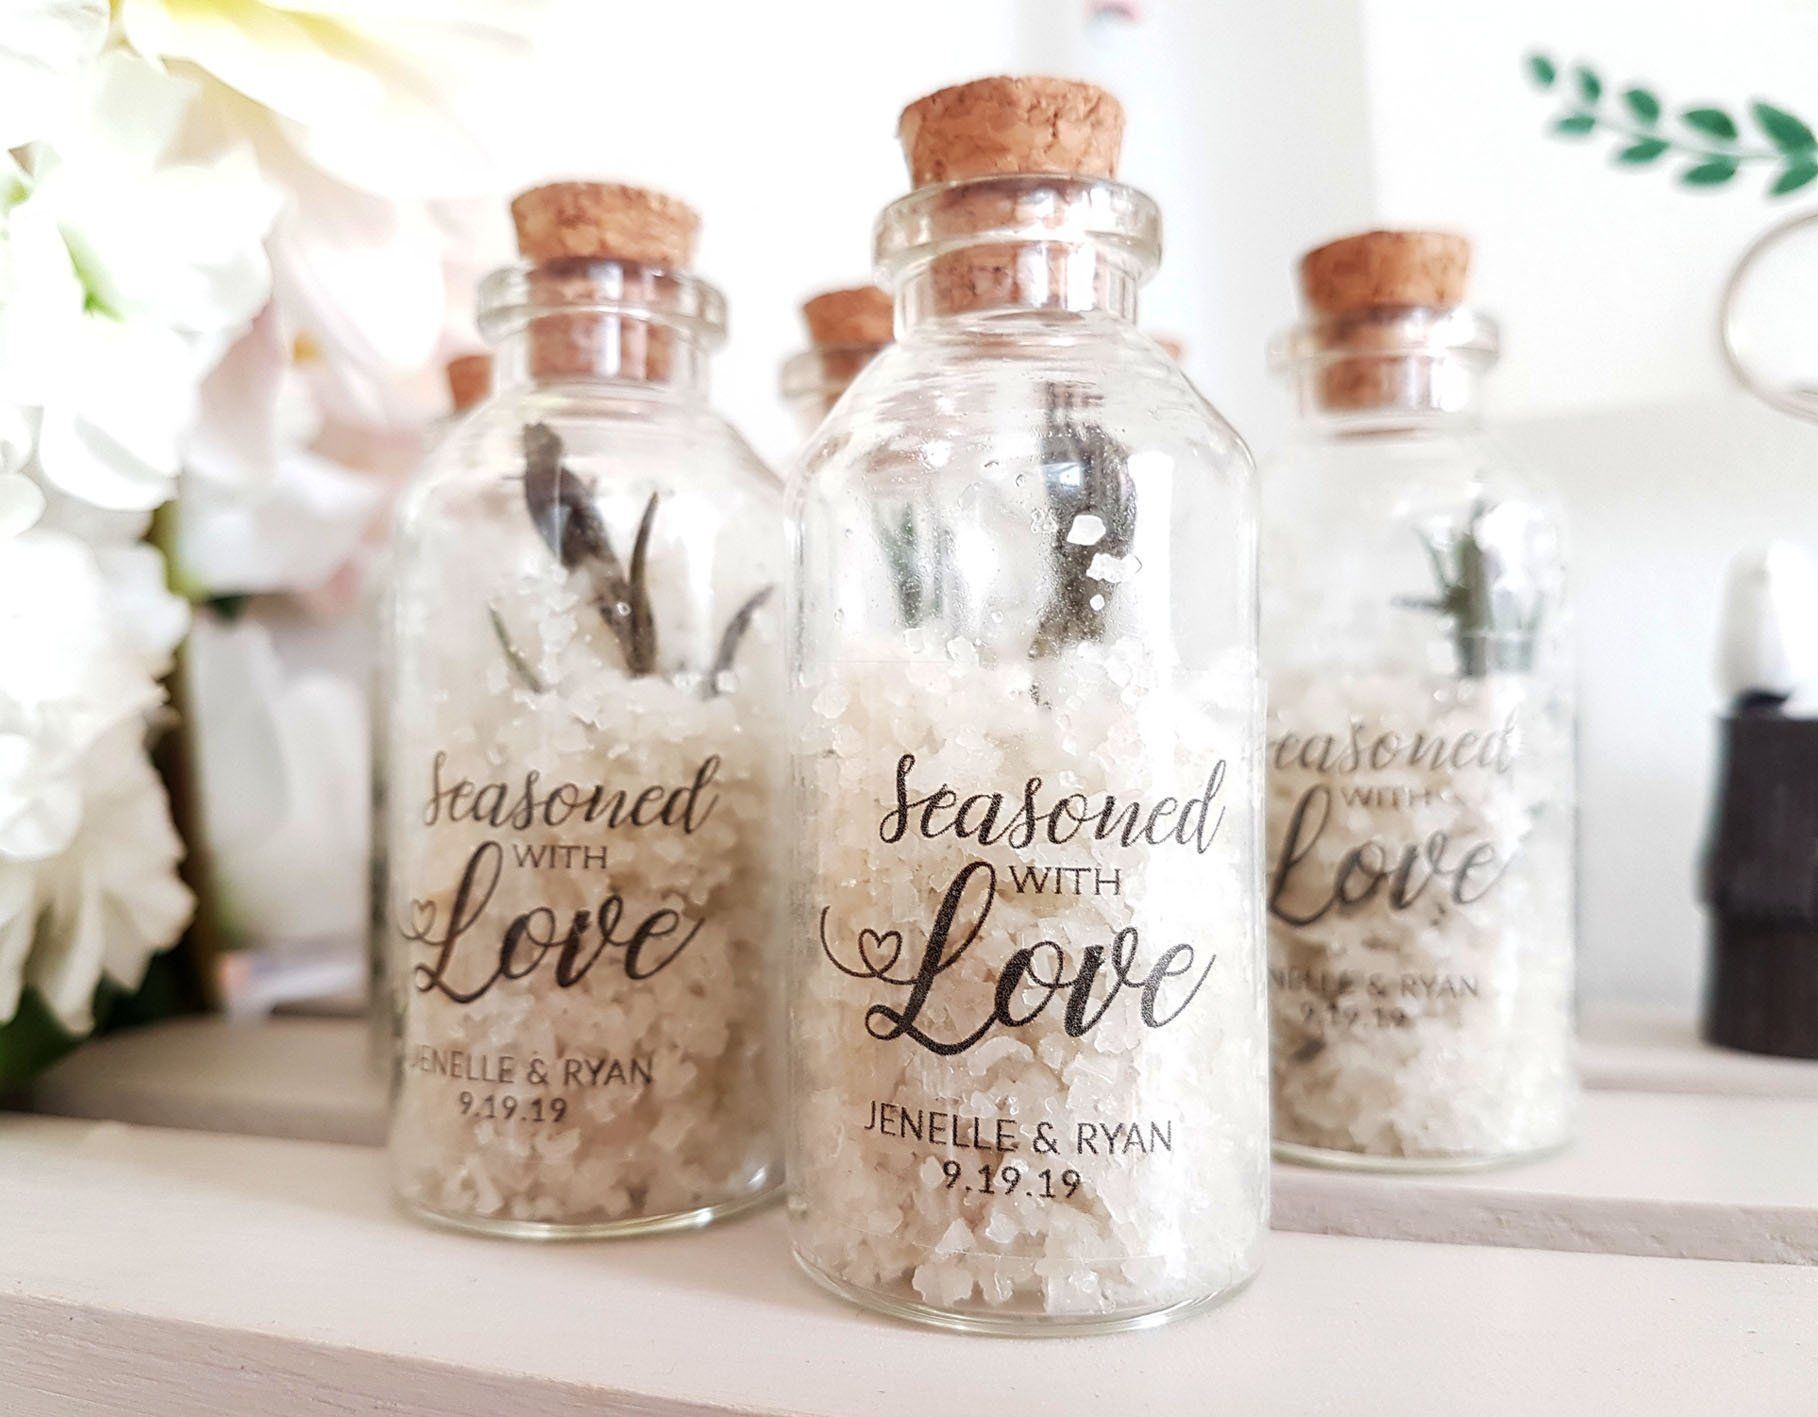 Seasoned With Love Sea Salt Wedding Favors Personalized Wedding Favor Jars Rosemary Sea Wedding Favour Jars Wedding Gifts For Guests Beach Wedding Favors